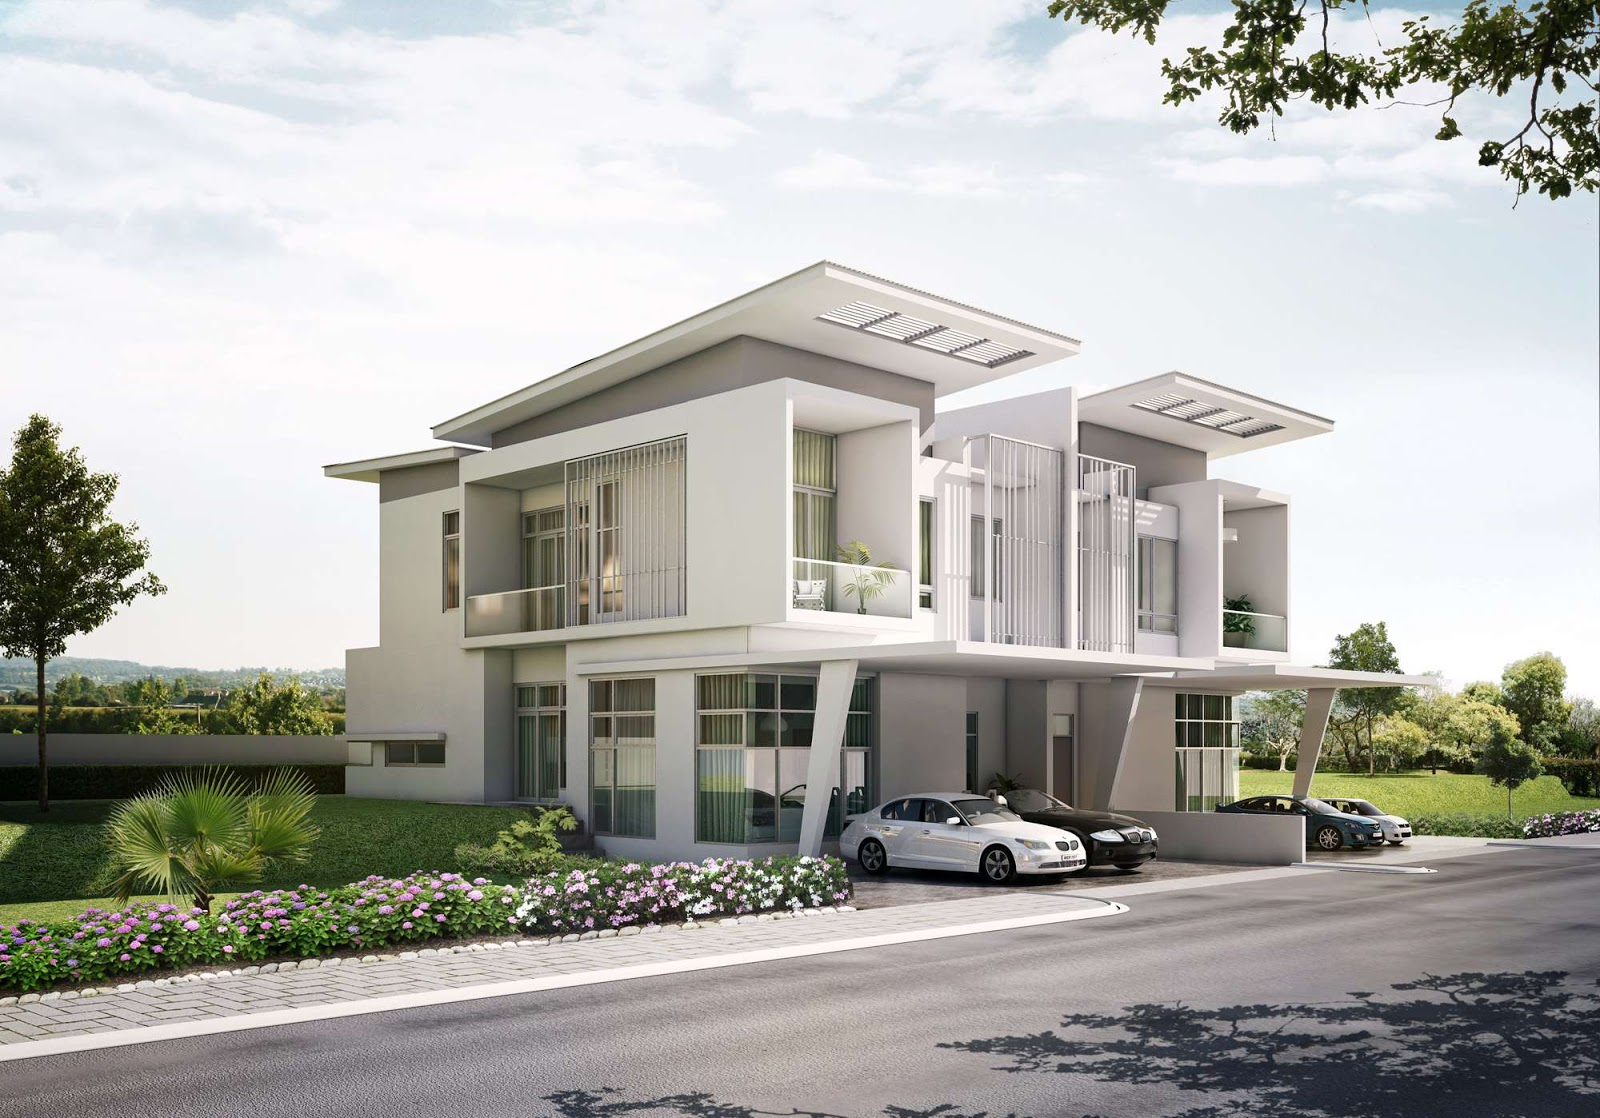 New home designs latest singapore modern homes exterior for New latest house design